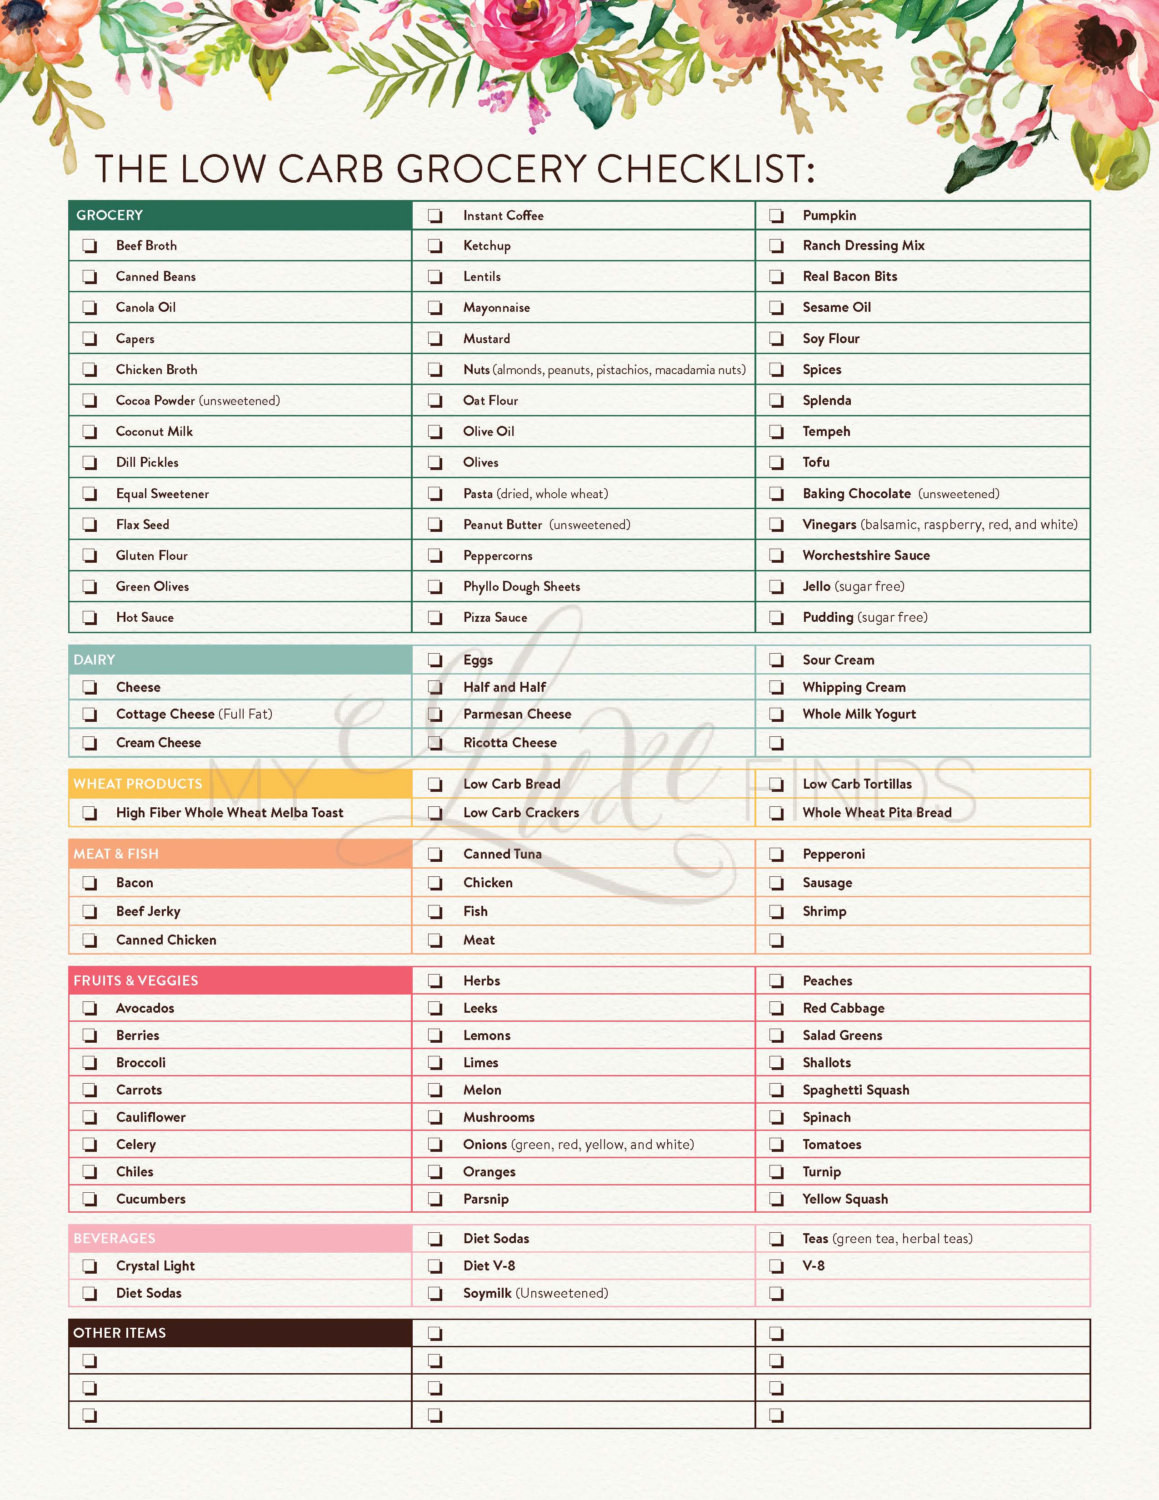 Grocery List For Low Carb Diet  Low Carb Diet Grocery Shopping Checklist List South Beach